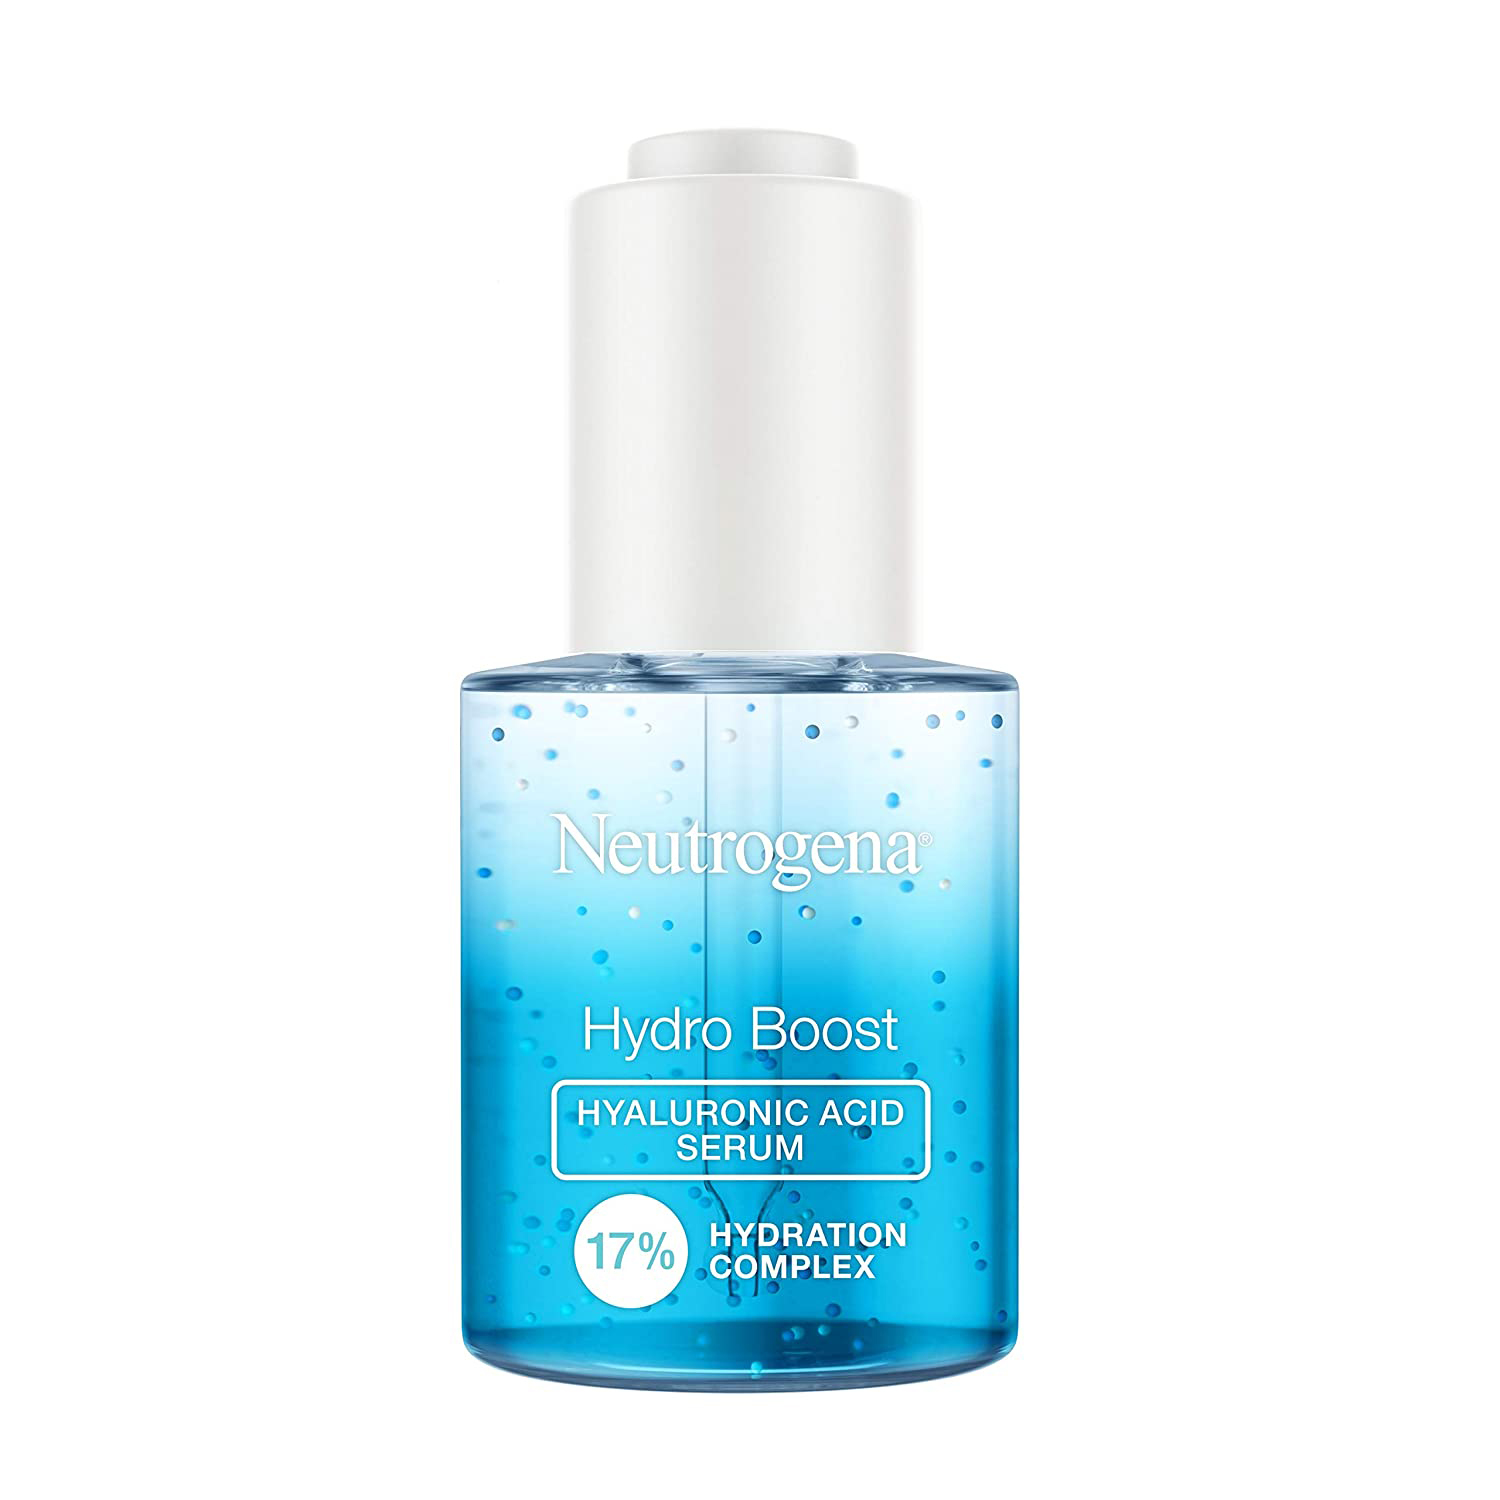 Neutrogena Hydro Boost Hyaluronic Acid Serum